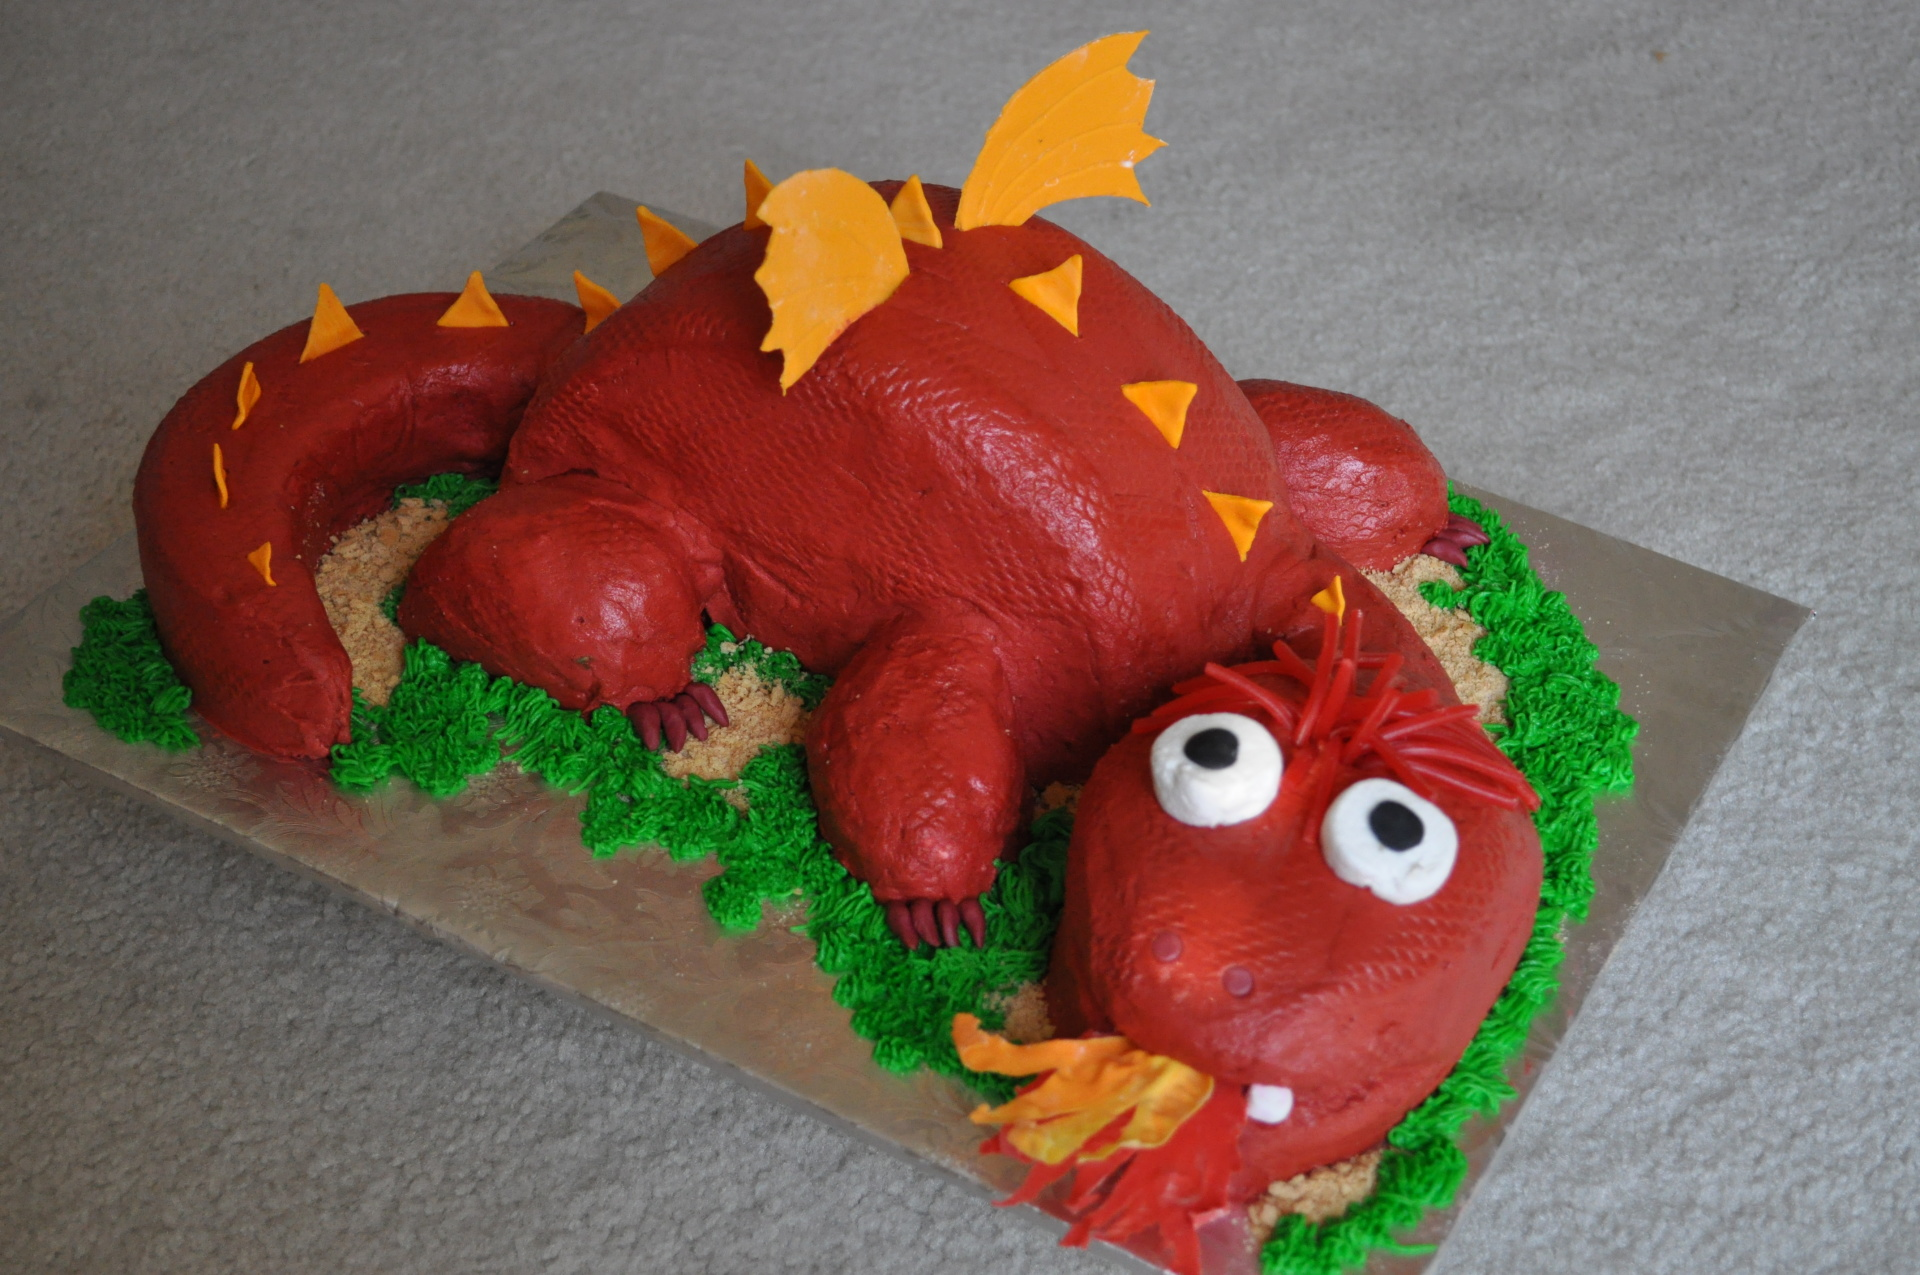 Carved Dragon cake